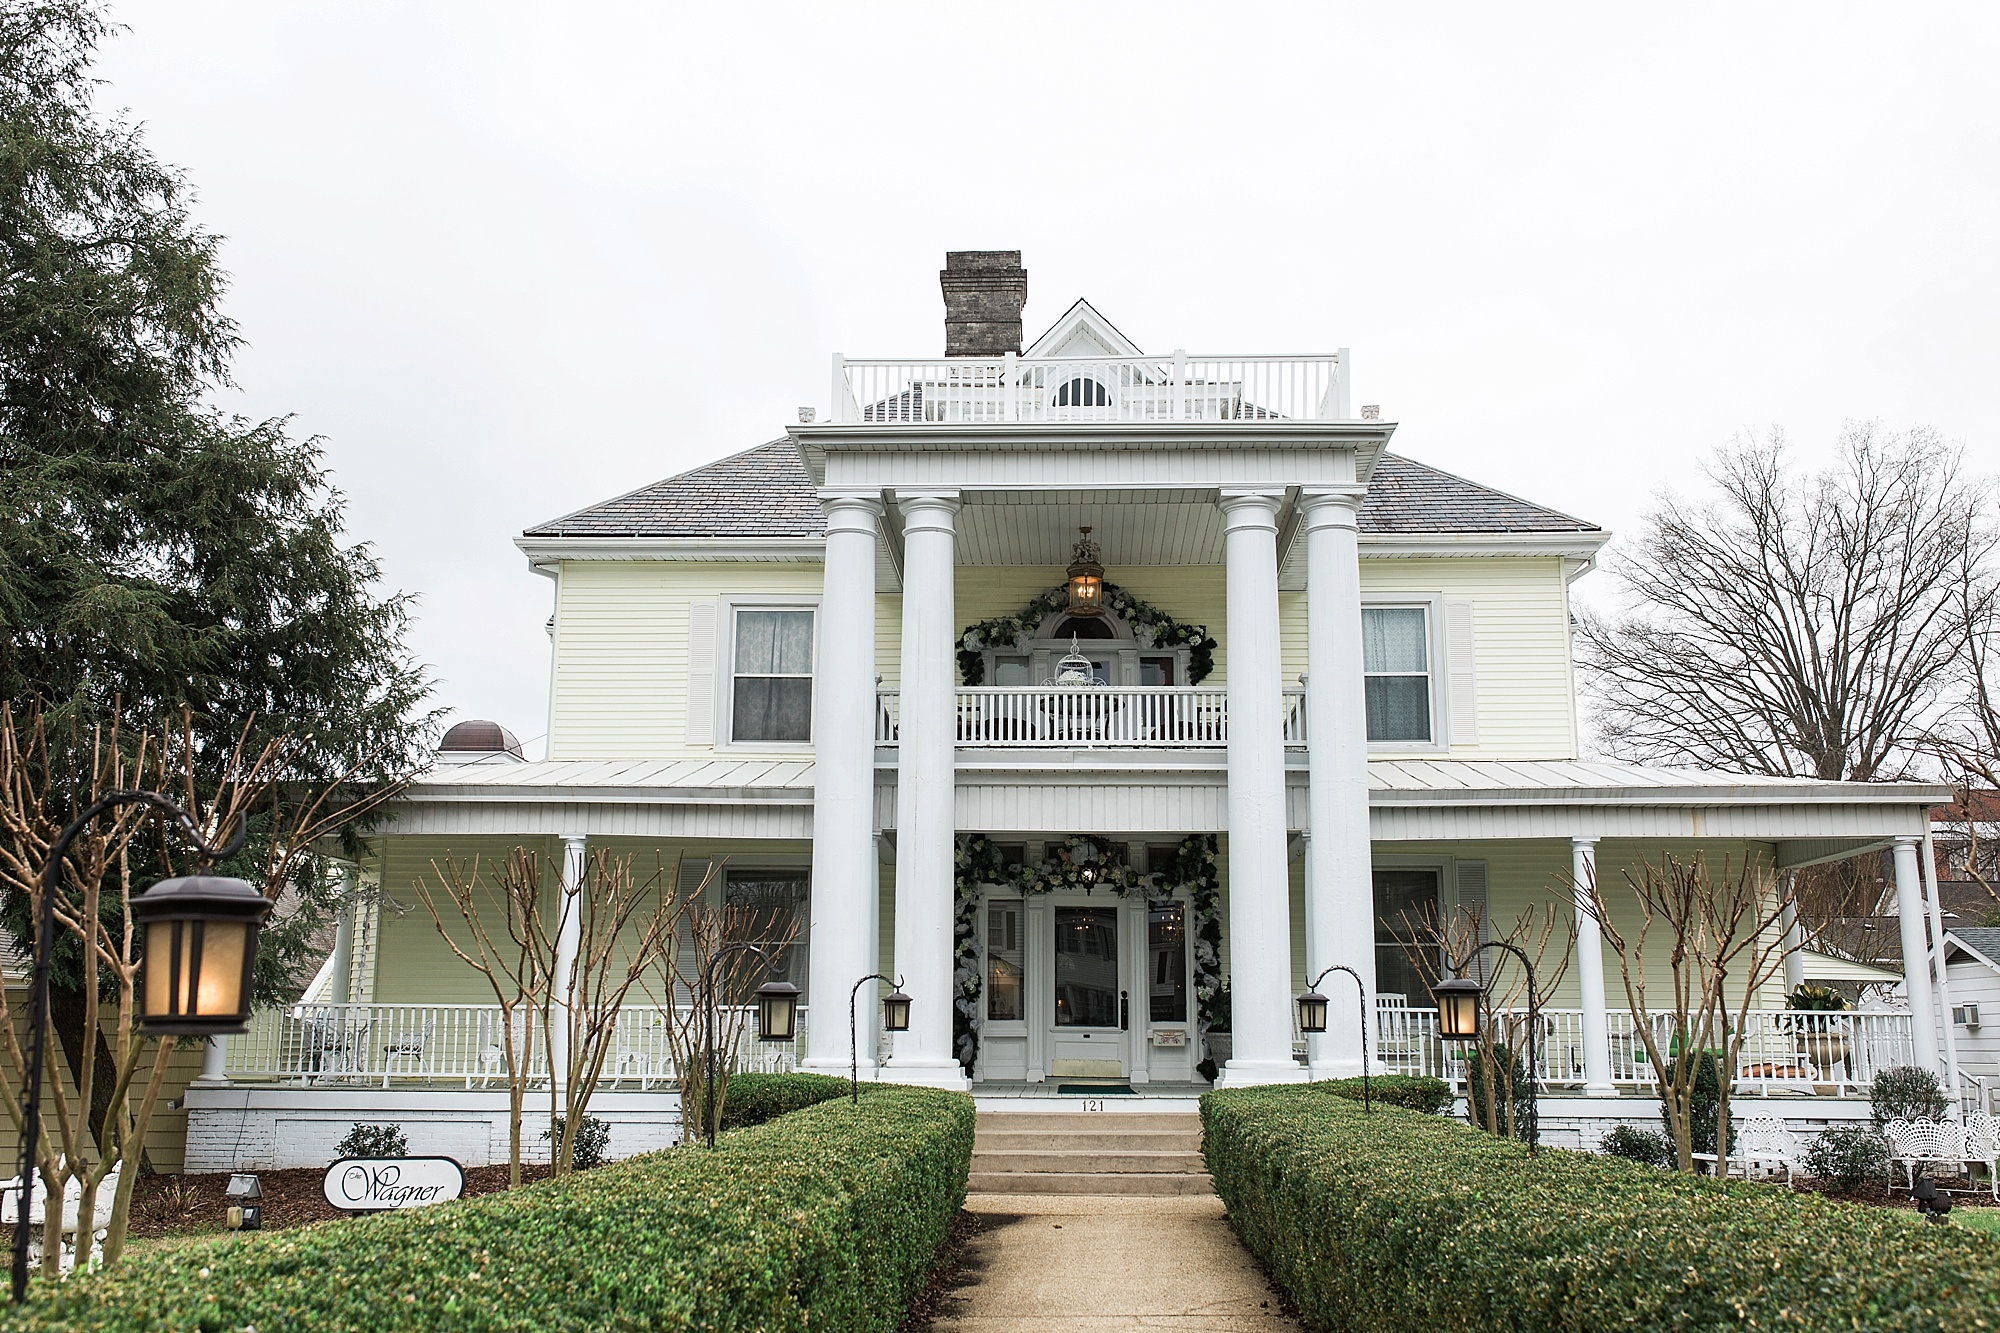 Wagner House